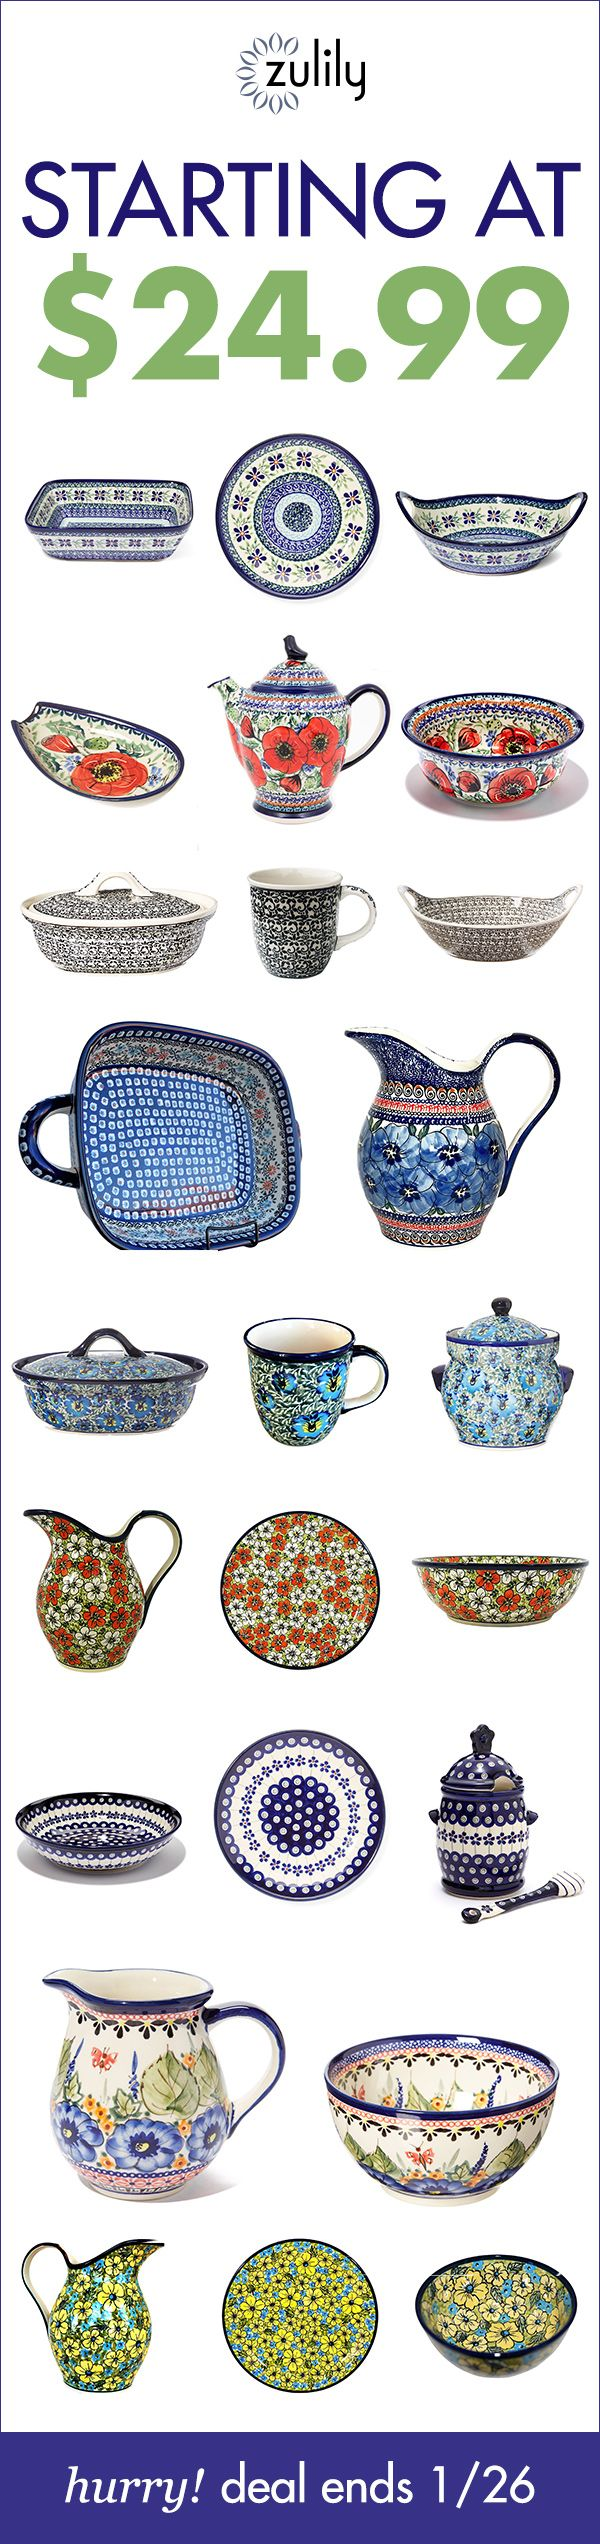 Sign up to shop pottery starting at $24.99. Beautiful craftsmanship inspired by the artistic traditions of German and Polish folklore make each piece of this incredible collection from Pottery Avenue a timeless addition to any table. Deal ends 1/26.